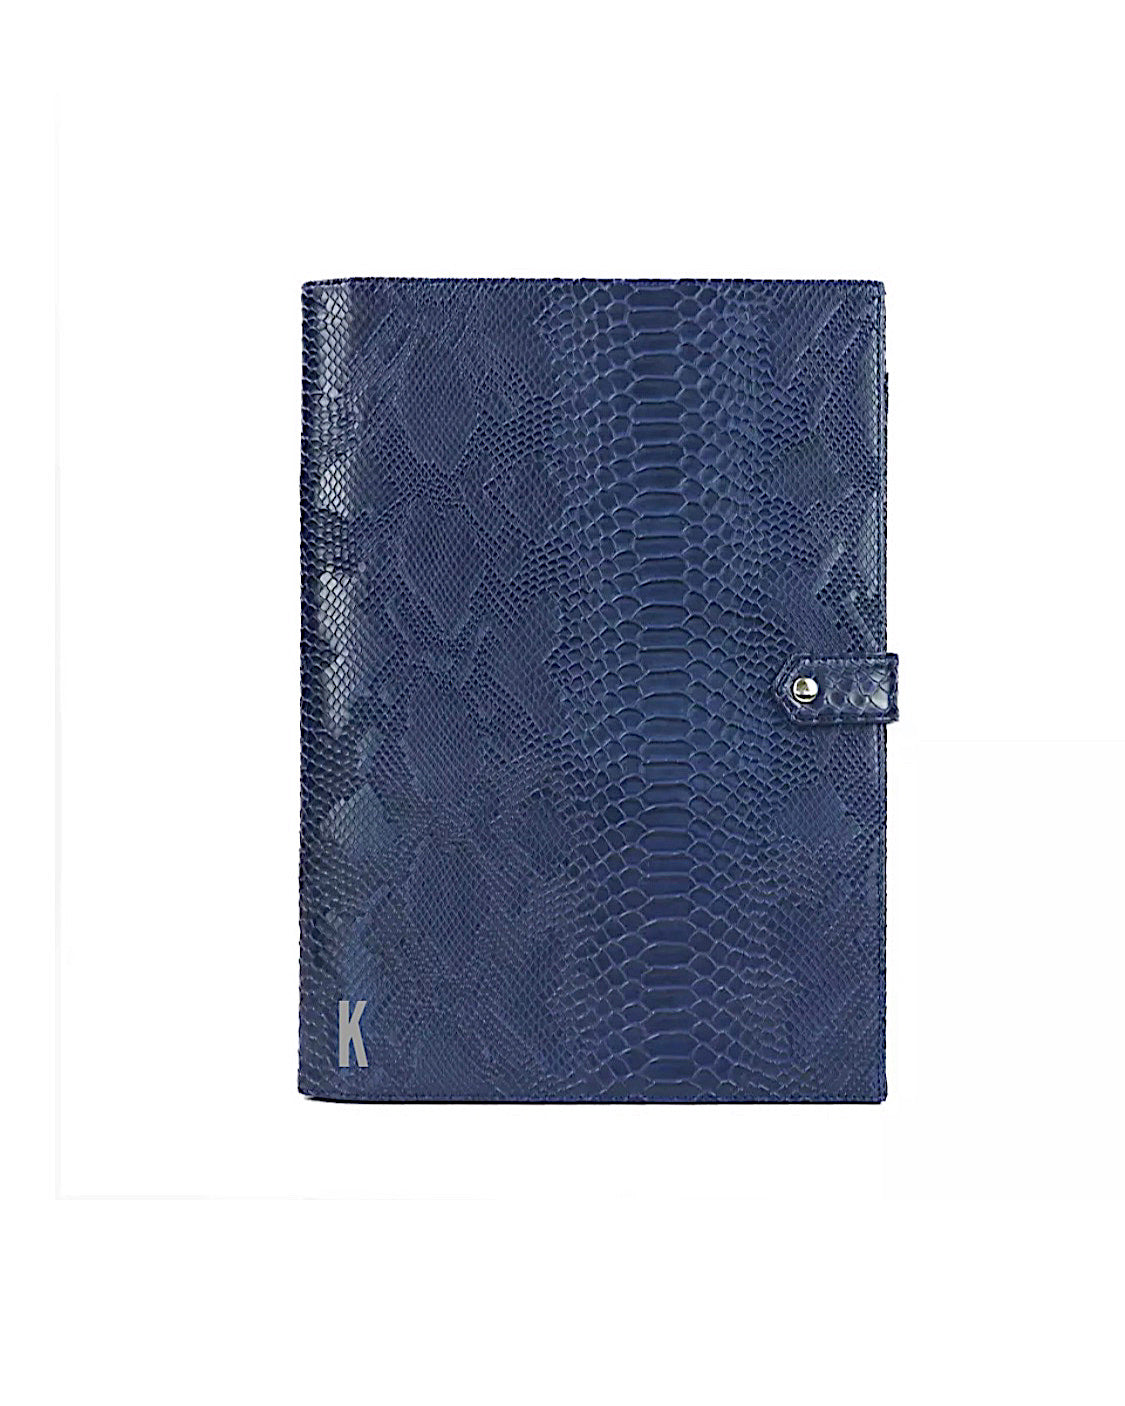 (Made-to-order) Navy Croc Vegan Leather Document Holder